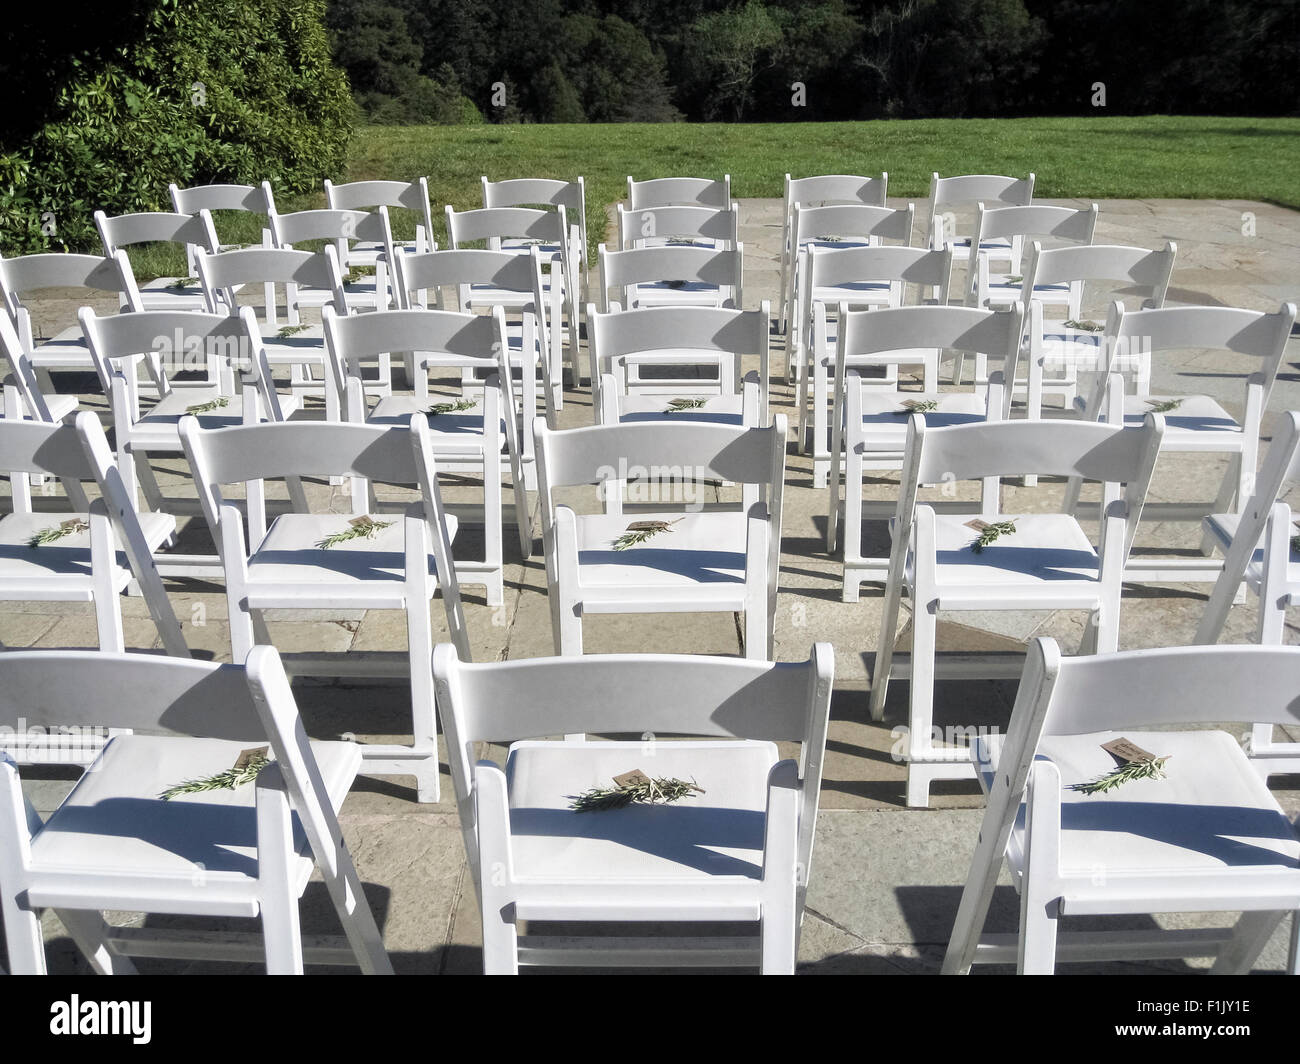 White Chairs At A Wedding Indoor Stock Photo: Bright White Wooden Chairs Are Lined Up And Awaiting